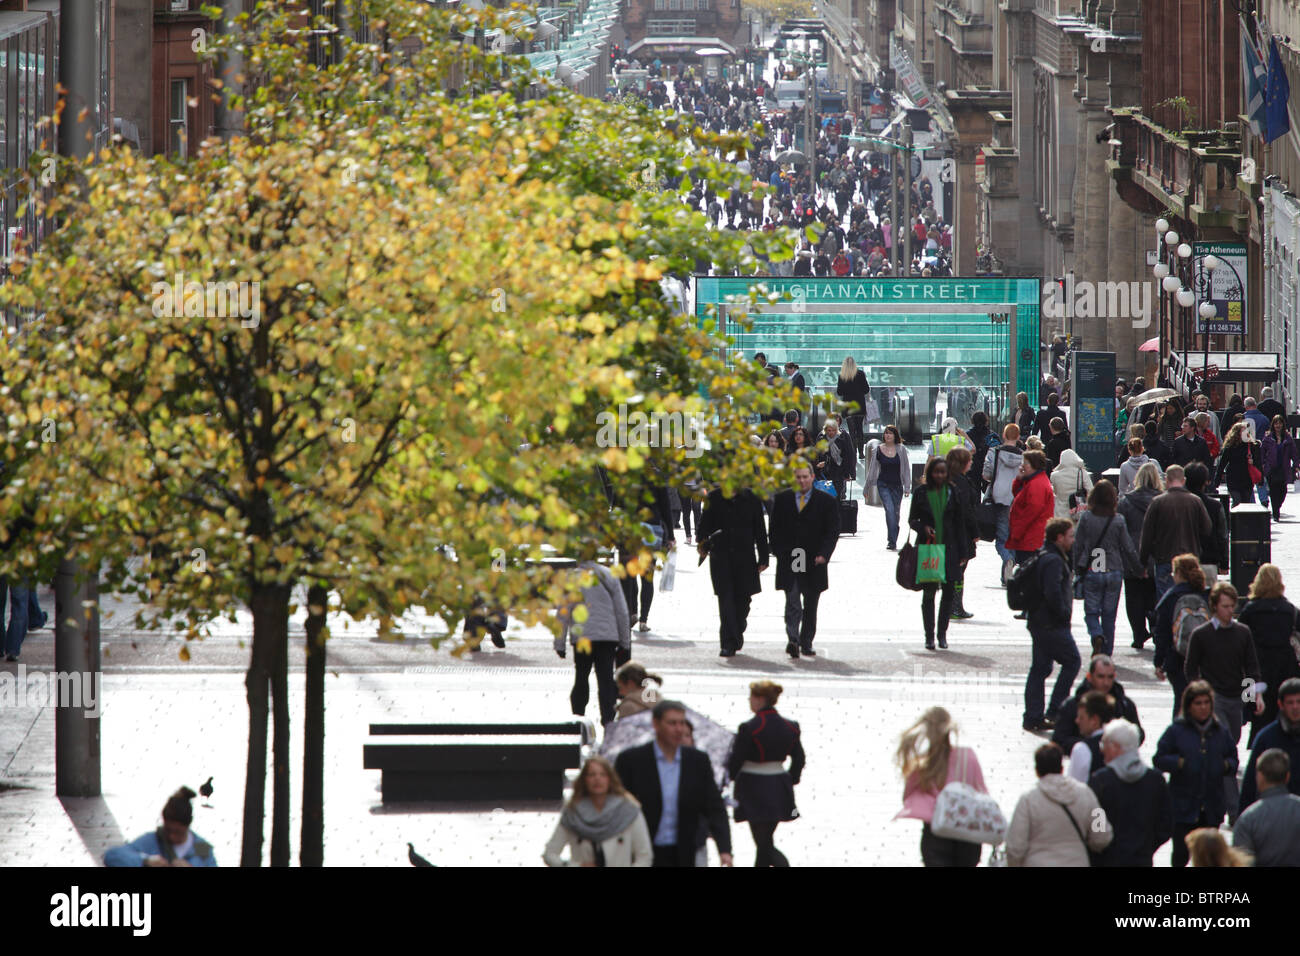 Pedestrians walking on Buchanan Street in autumn, Glasgow, Scotland, UK - Stock Image